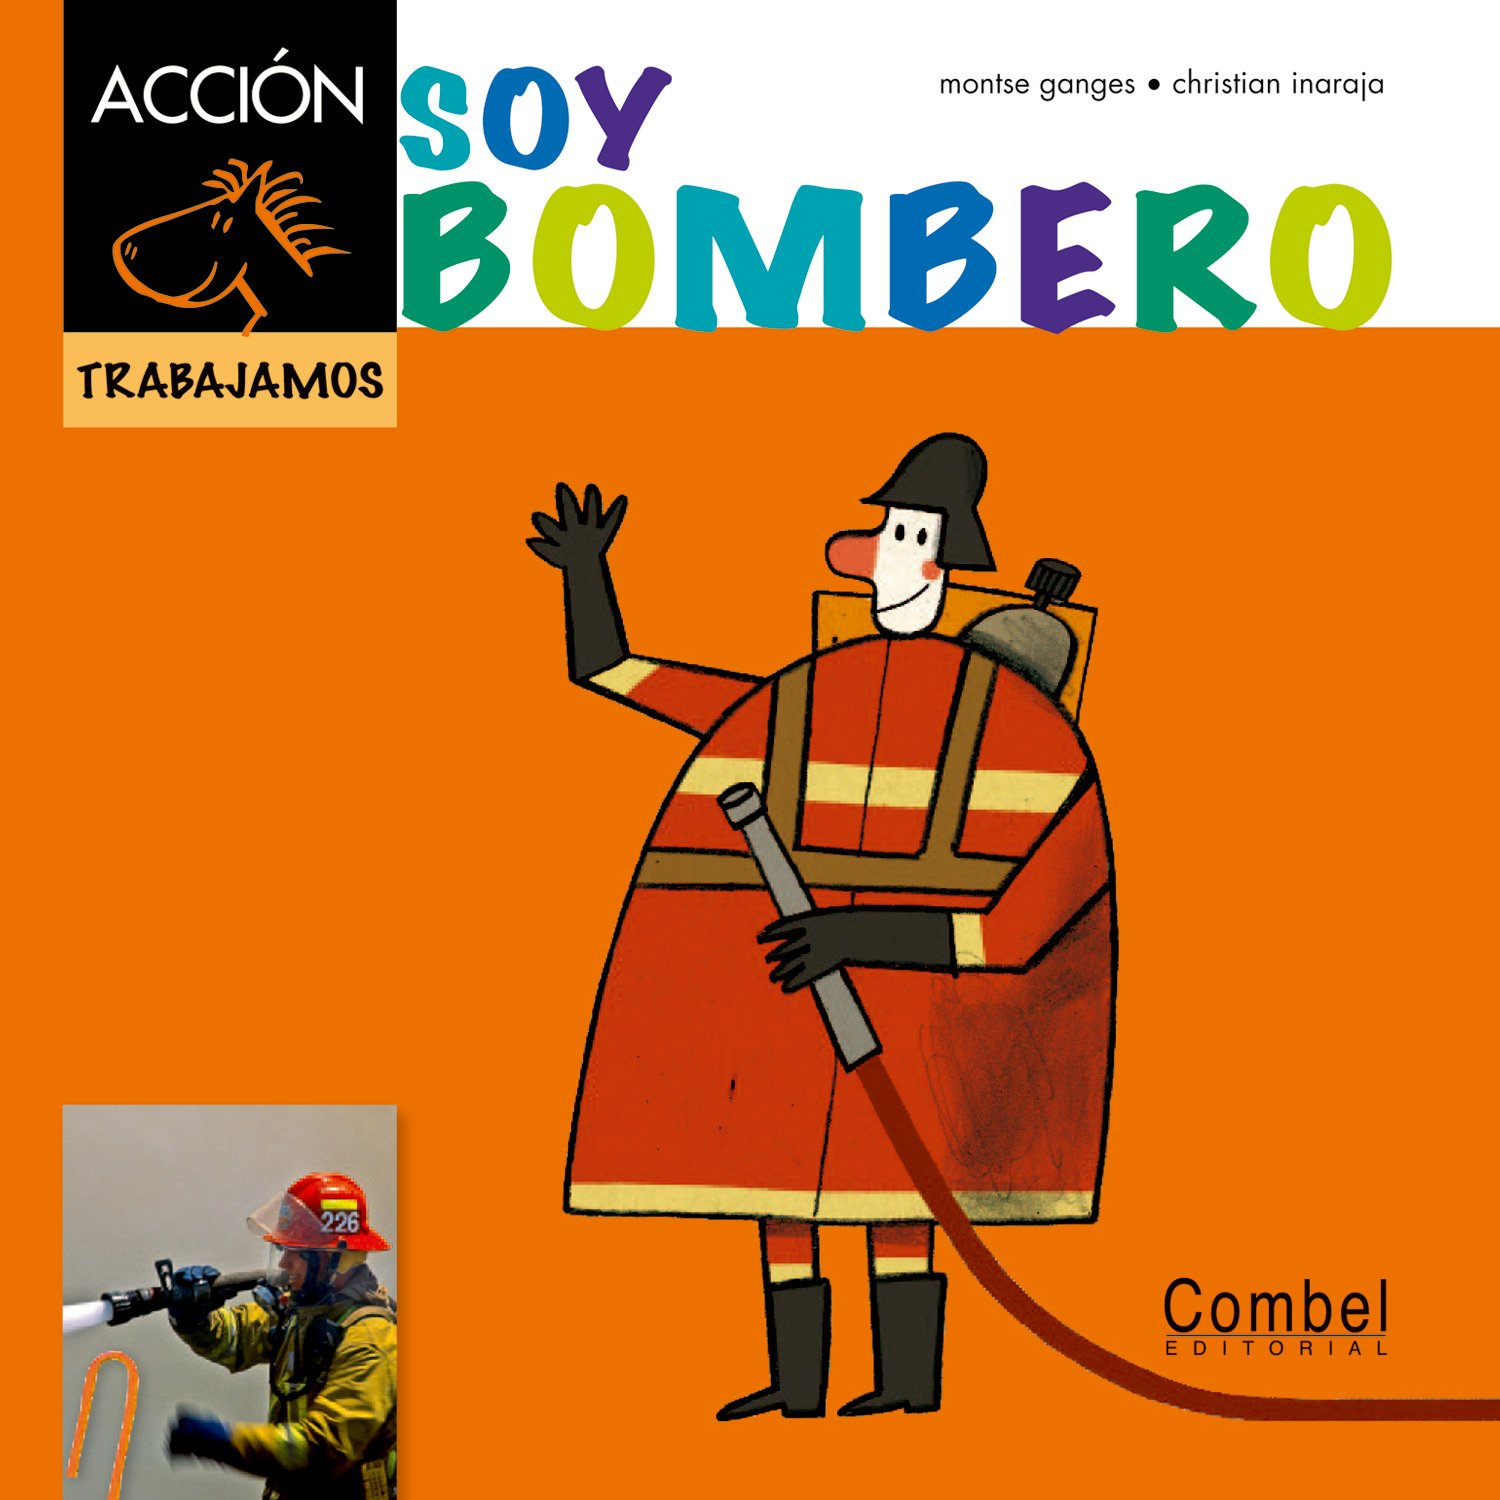 Soy bombero (Caballo alado ACCIÓN) (Spanish Edition): Montse Ganges, Christian Inaraja: 9788498257434: Amazon.com: Books